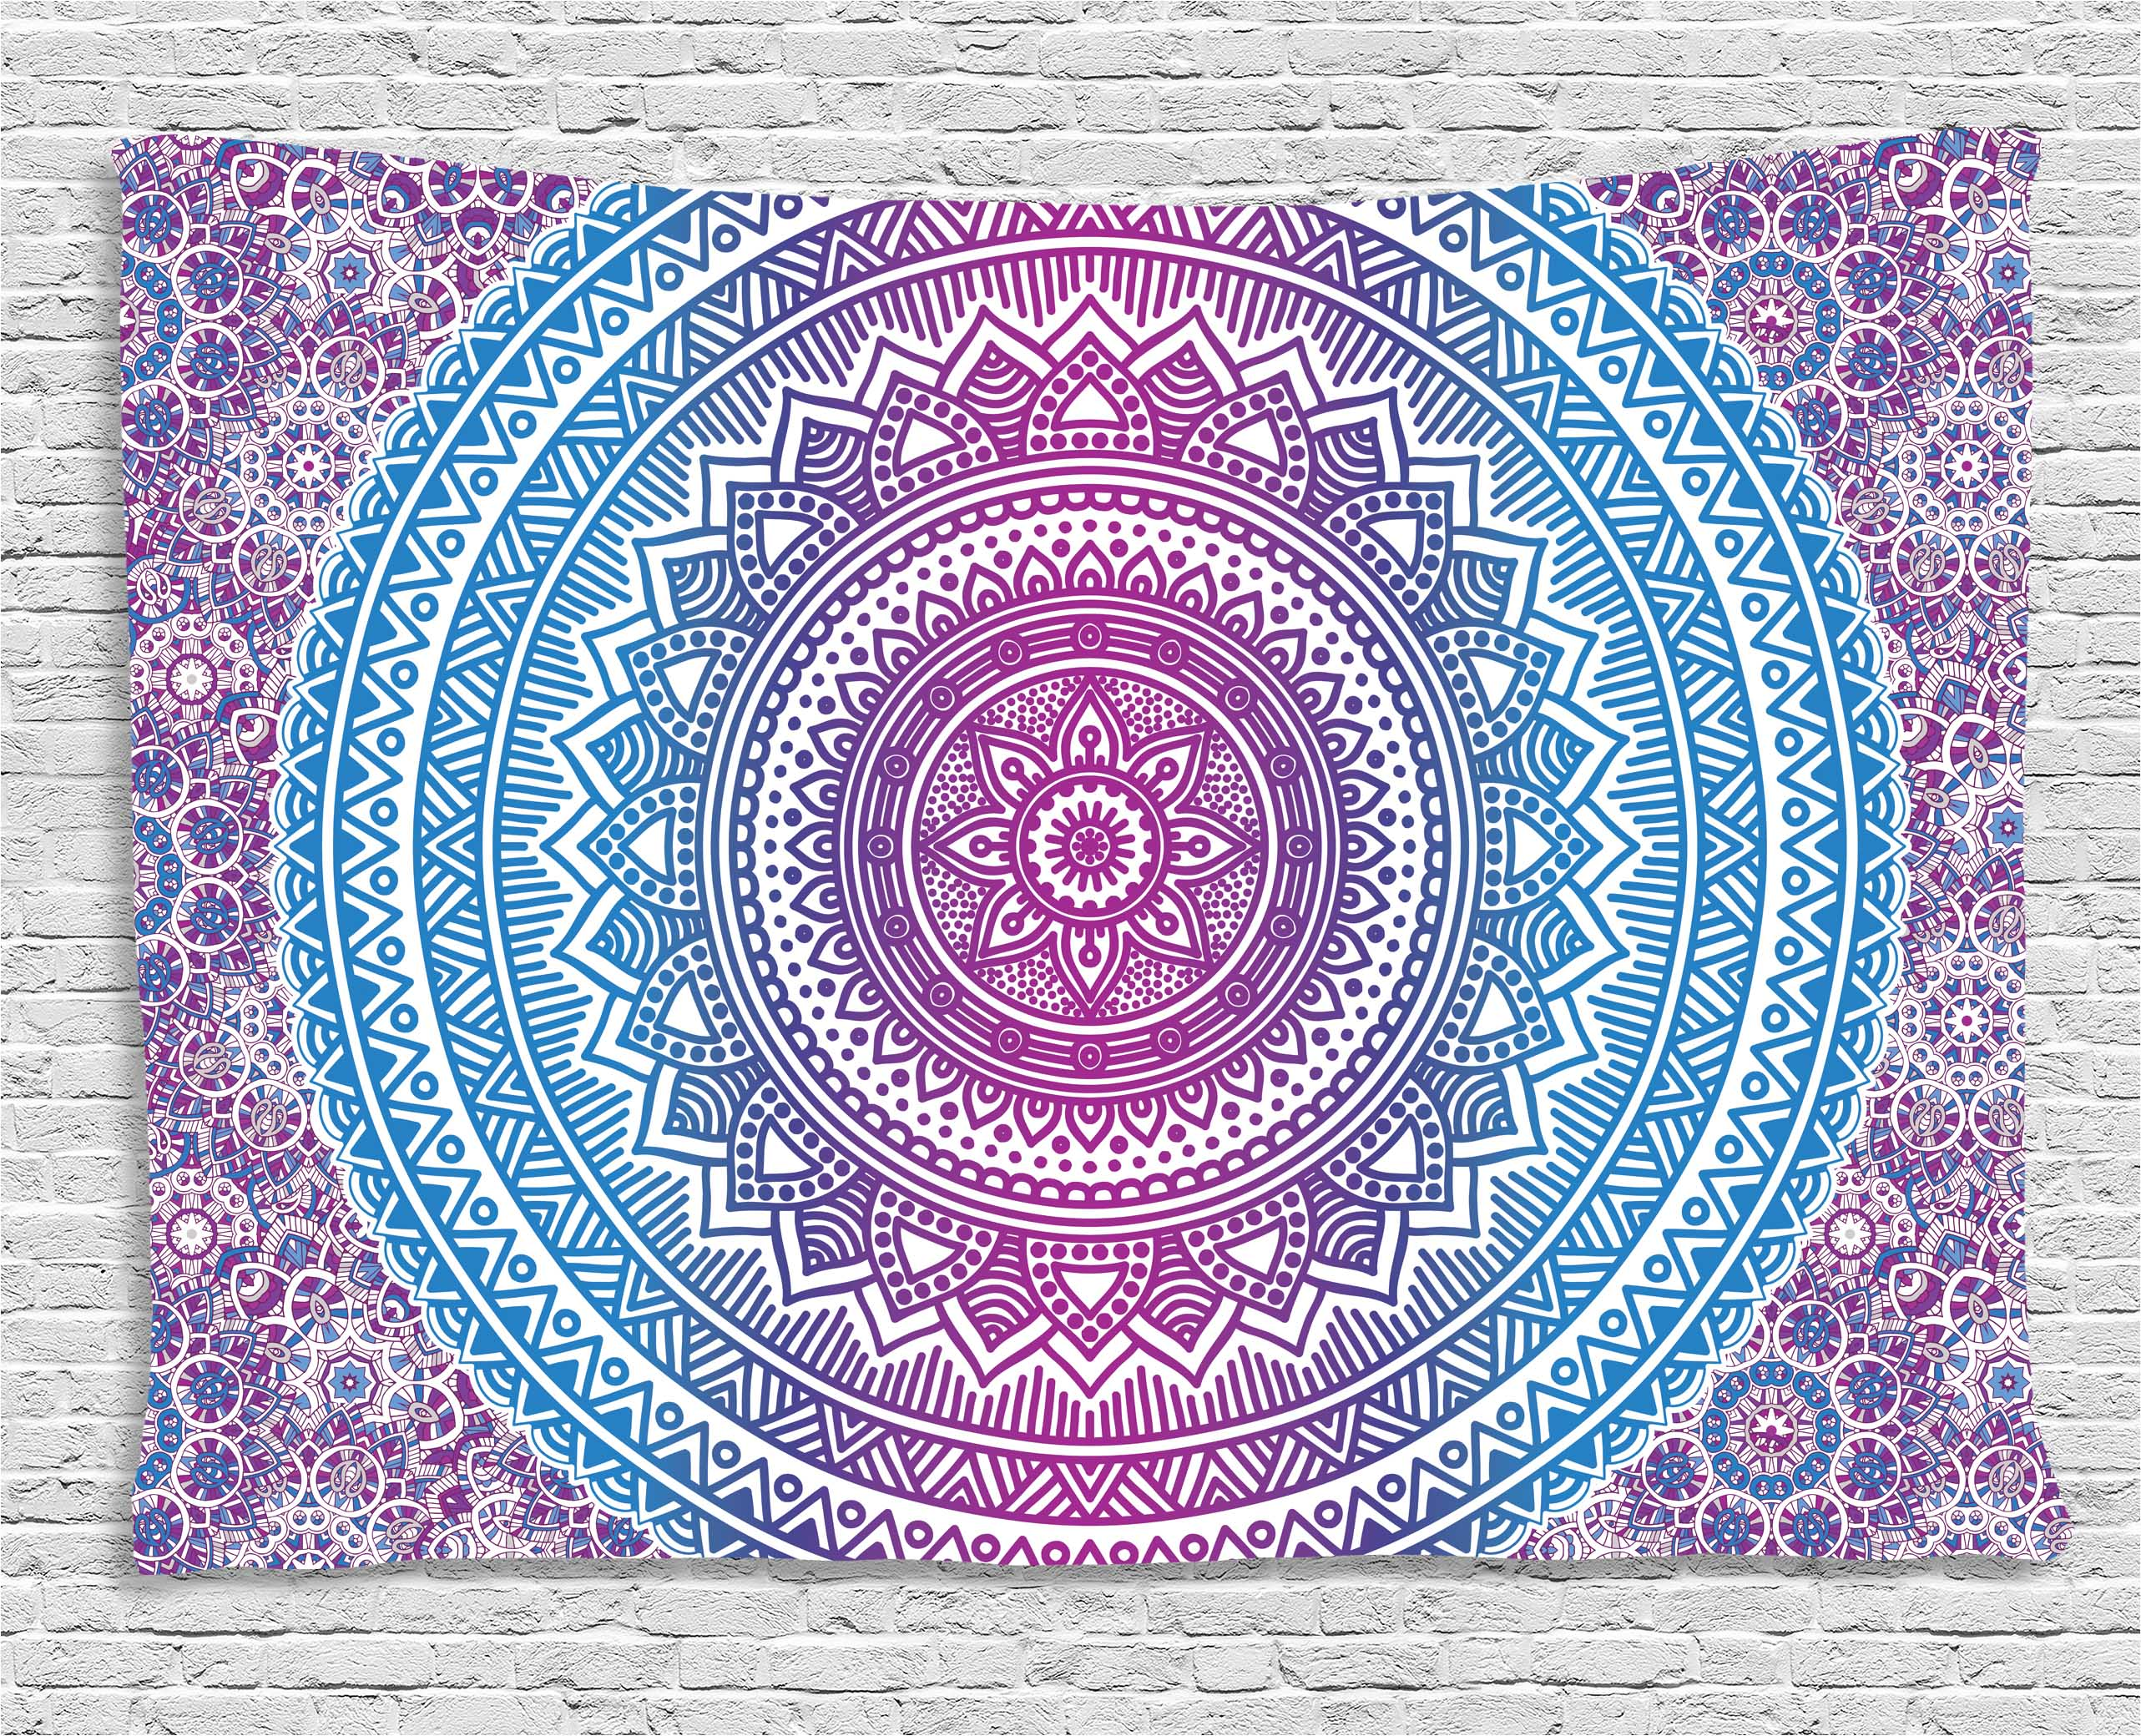 Blue and Pink Tapestry, Ombre Mandala Floral Star Medallion Pattern Indian Style Bohemian, Wall Hanging for Bedroom... by Kozmos